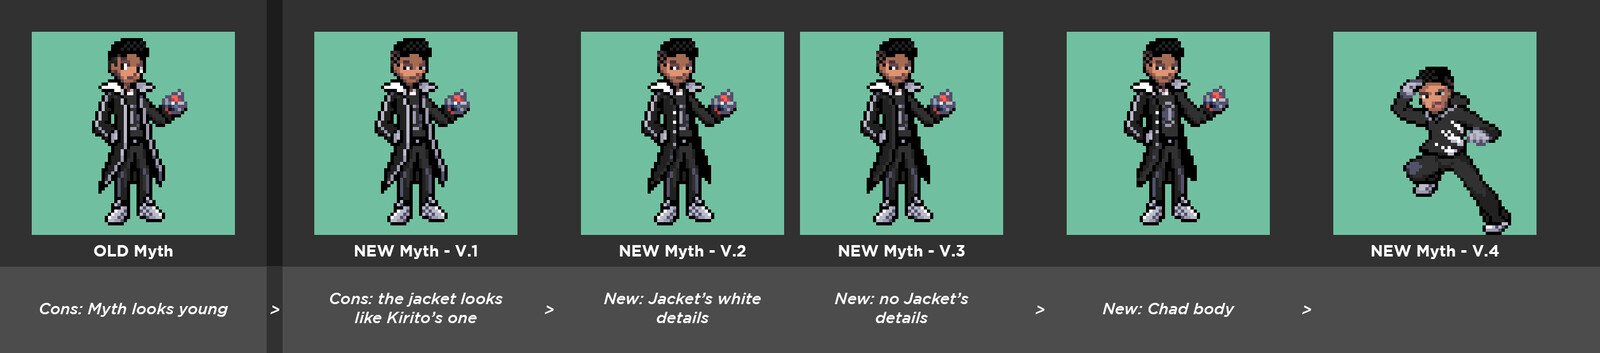 Unused Myth Battle Sprite + Variations